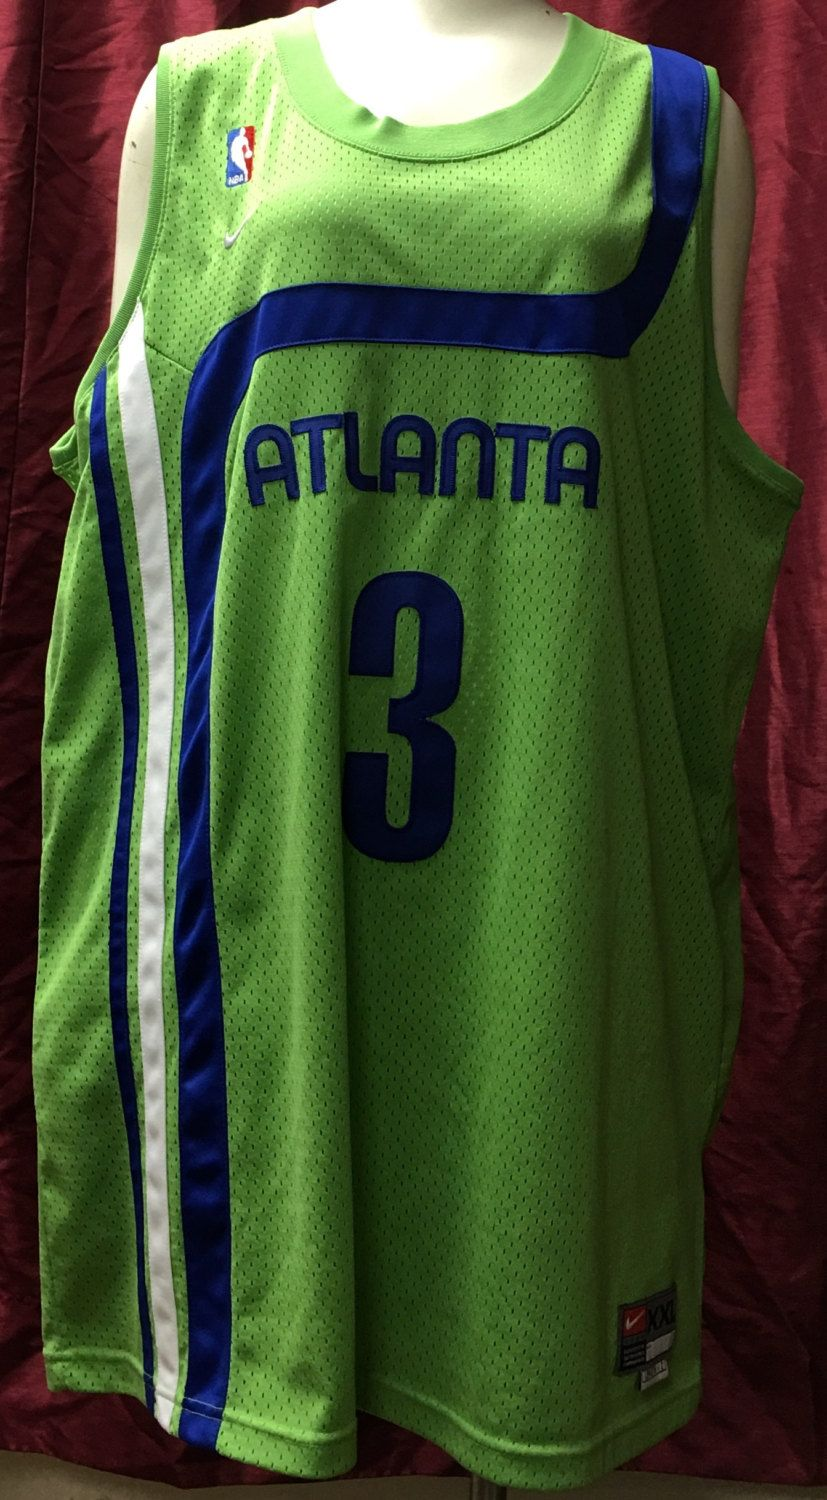 Atlanta Hawks ef Abdur Rahim Men s Size XXL Length 2 NBA